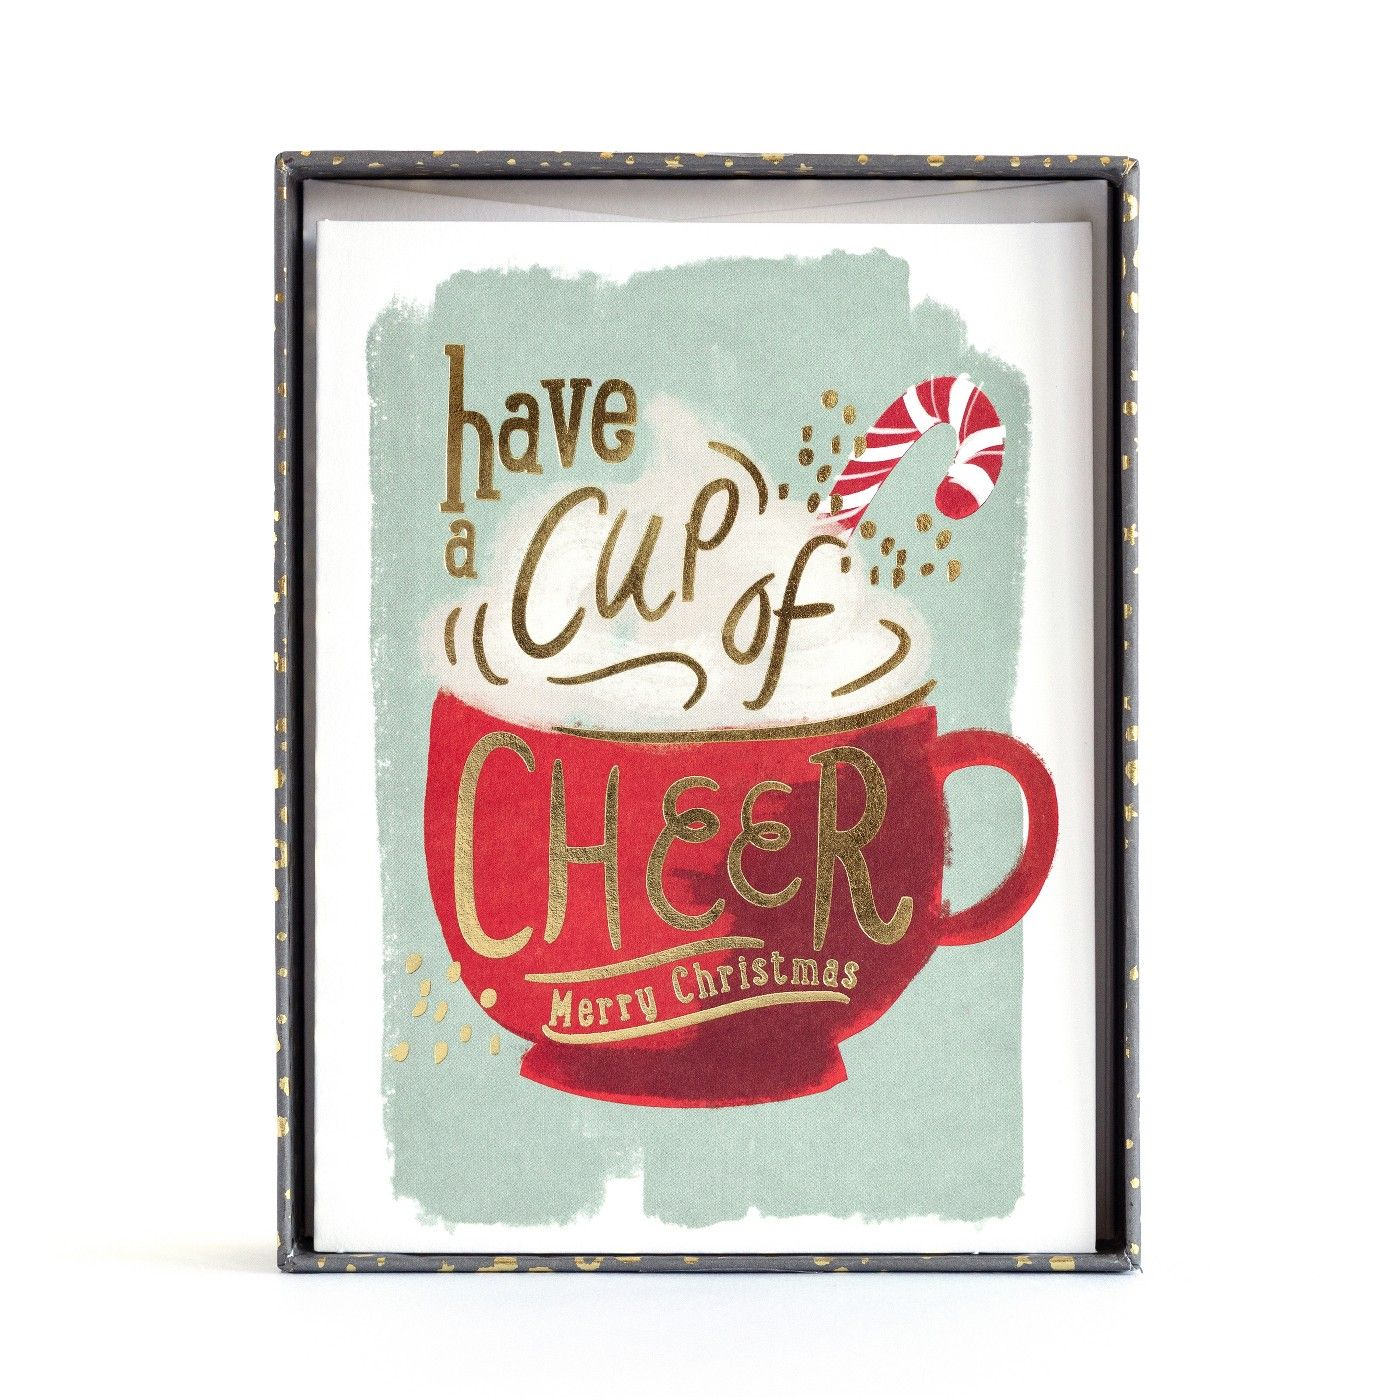 8ct Minted Have a Cup of Cheer Hot Chocolate Holiday Boxed